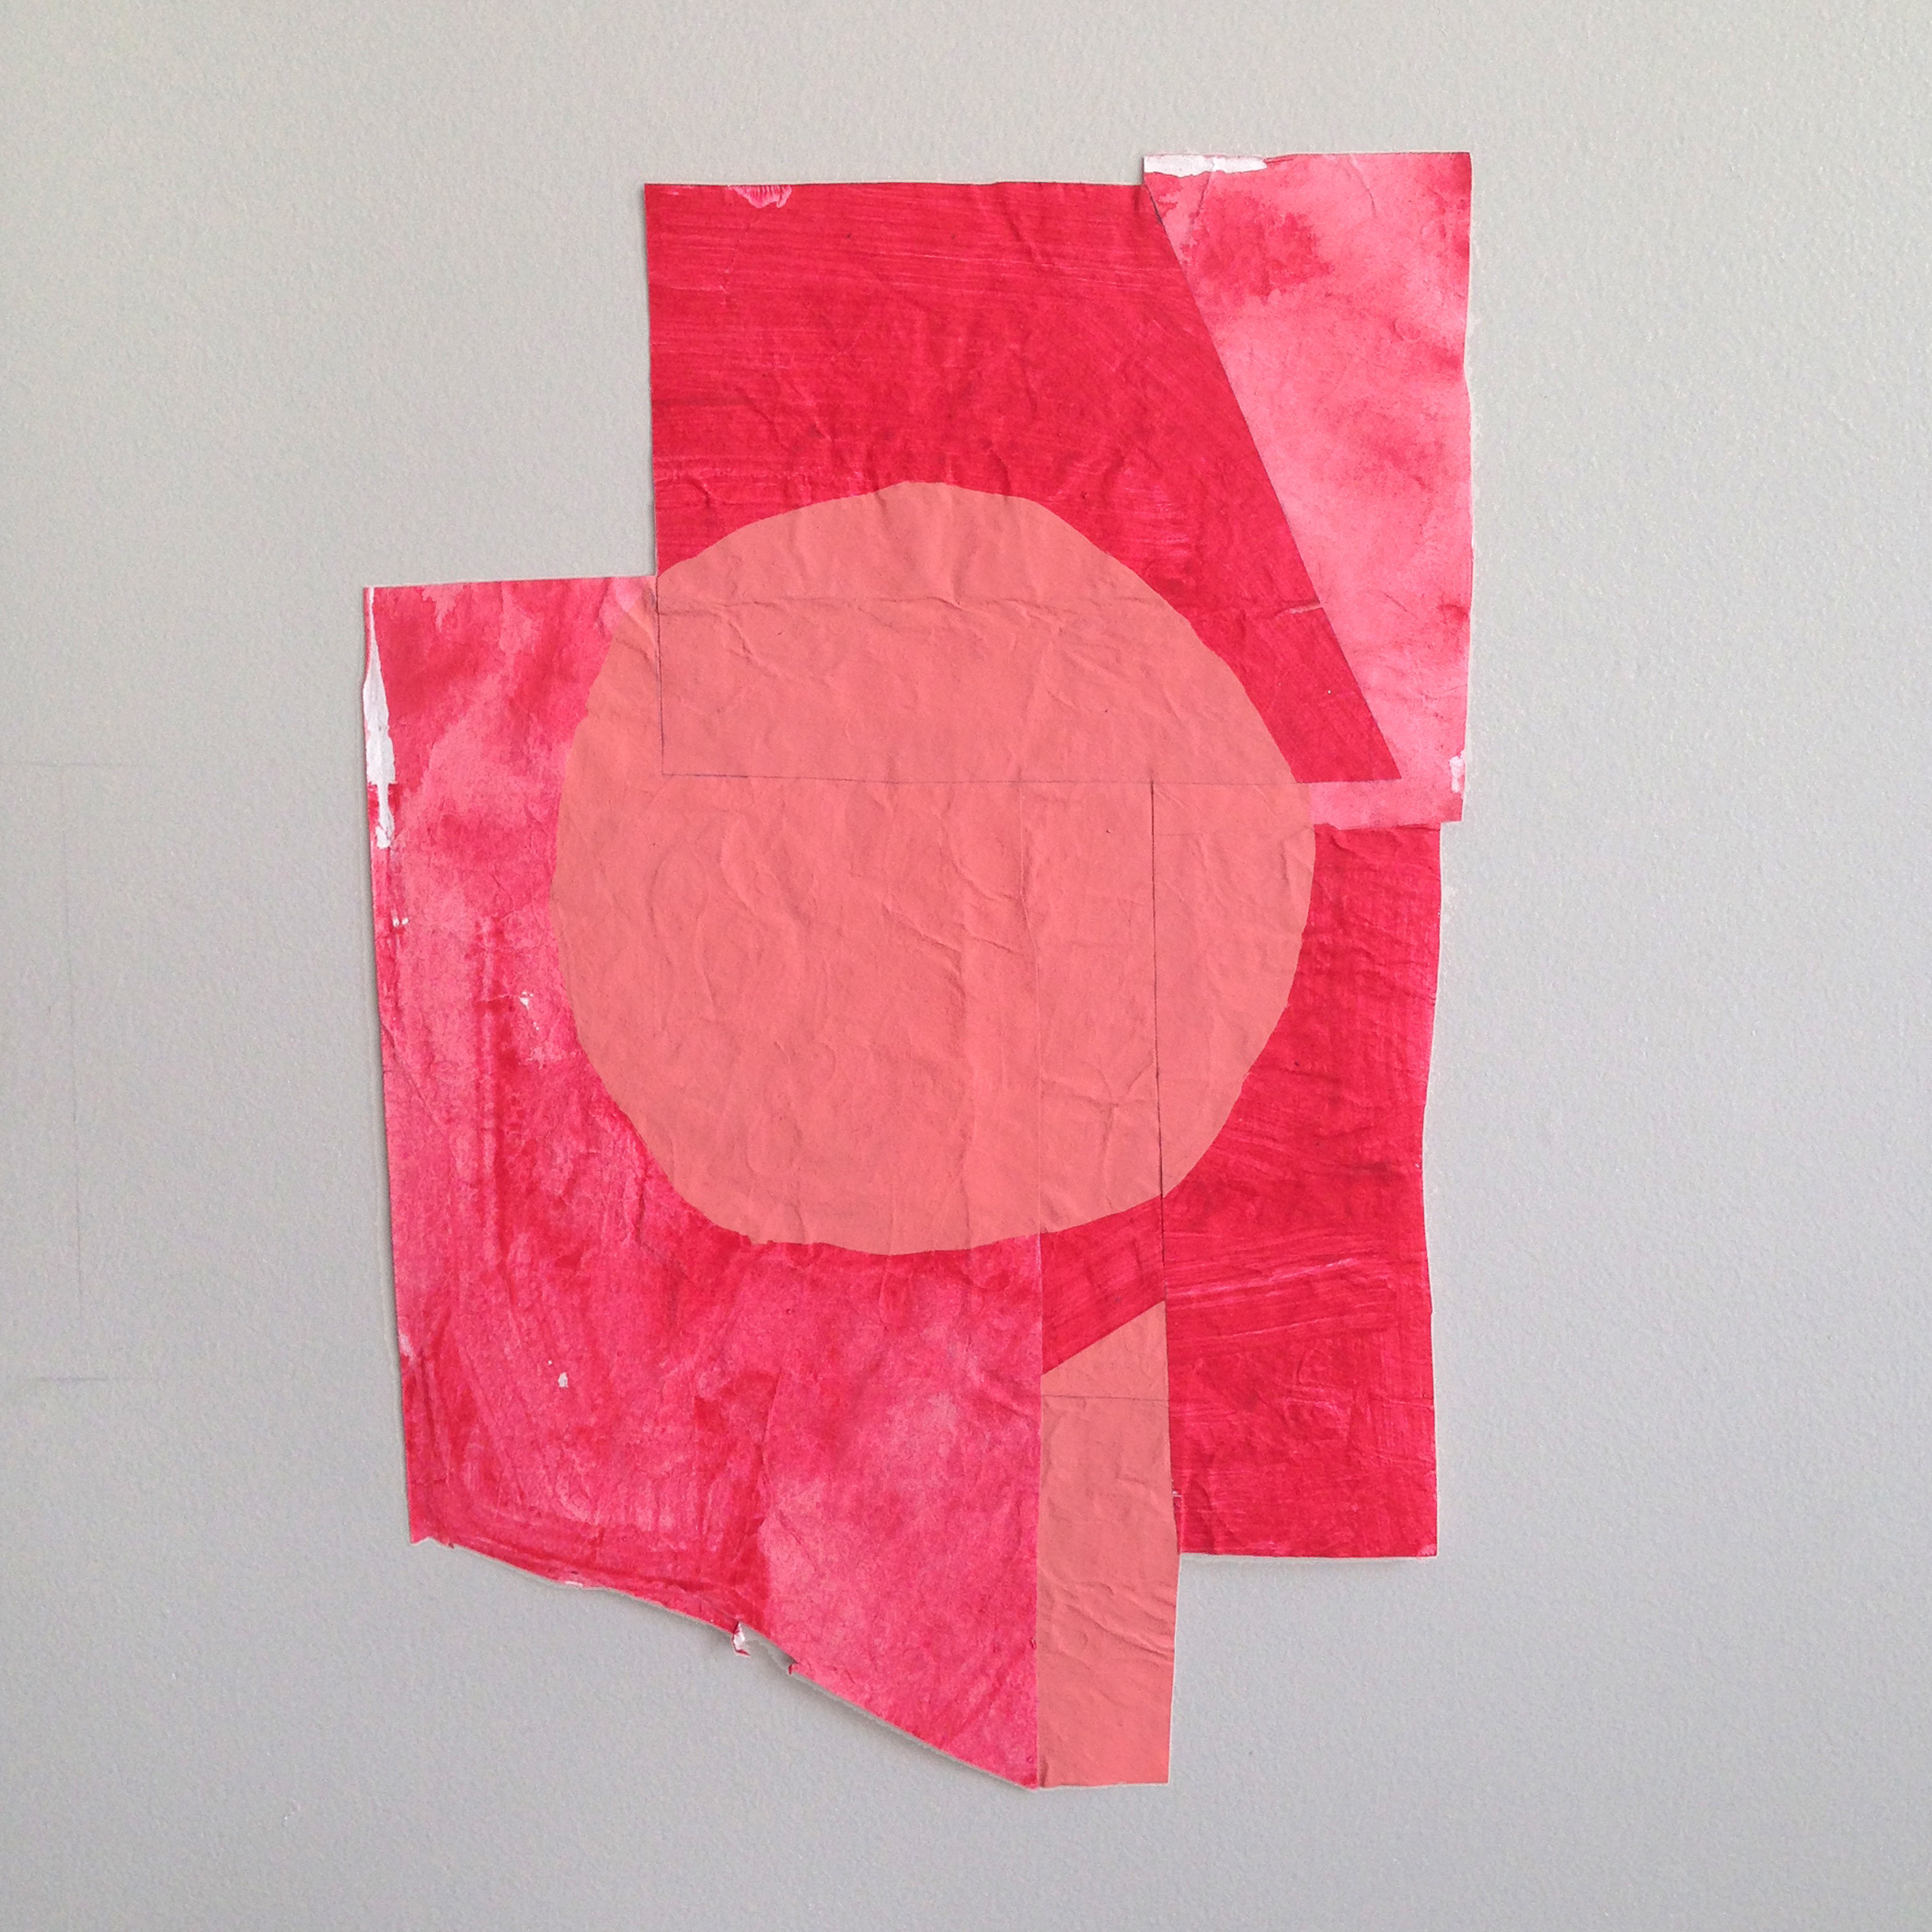 Disrupted Drawing Small 27, 2015, gesso gouache and acrylic with collage on rice paper, 15 1/2 x 10 1/8""